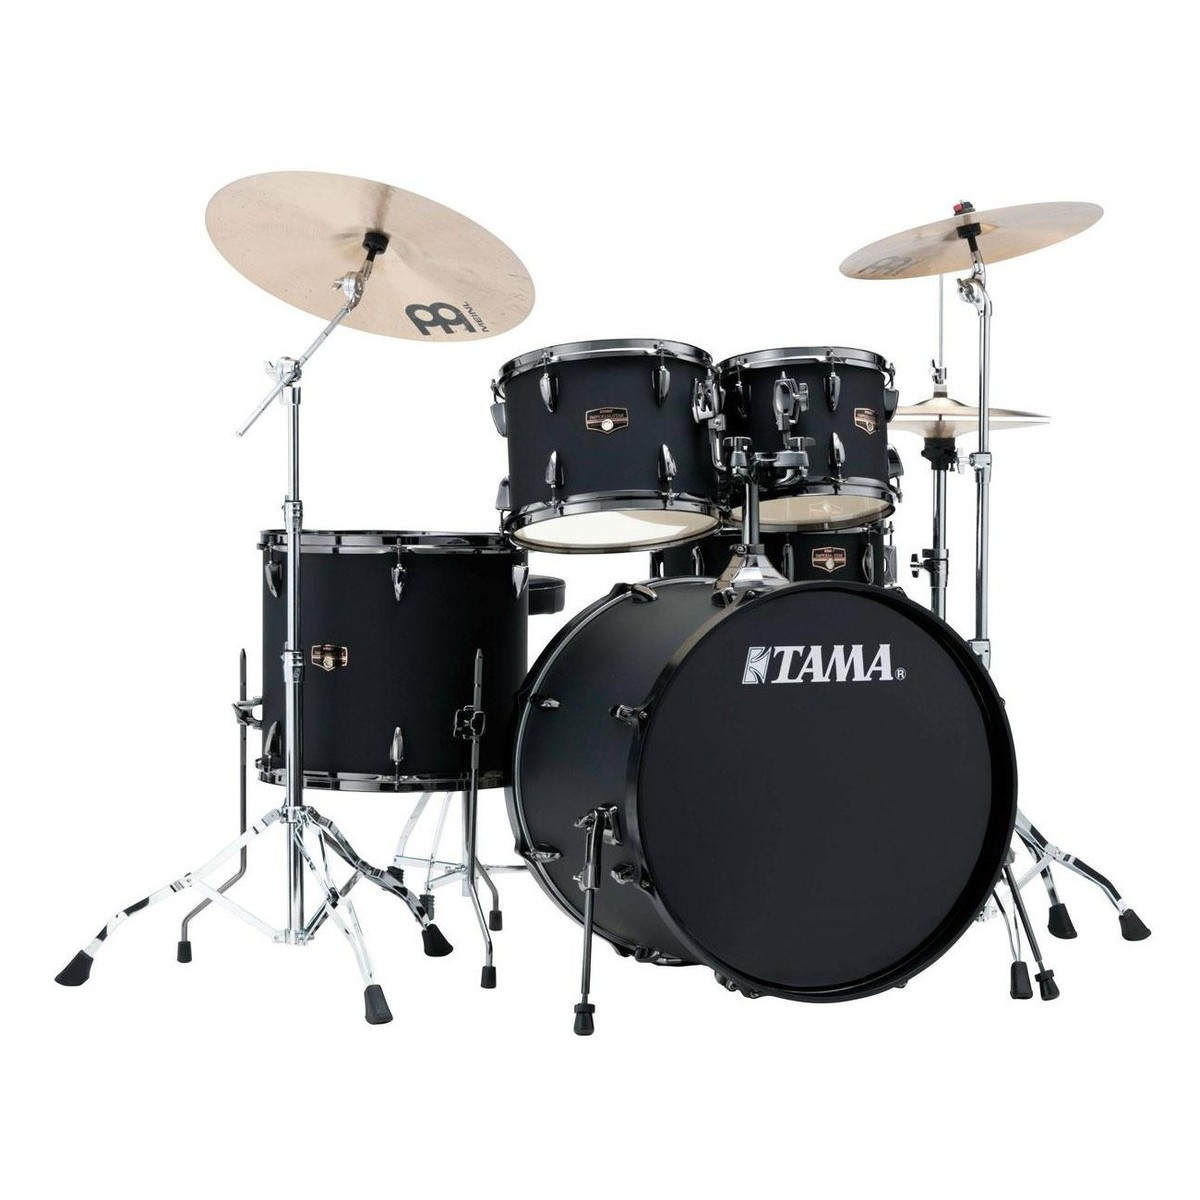 tama imperialstar 20 39 39 5pc drum kit blacked out black at gear4music. Black Bedroom Furniture Sets. Home Design Ideas